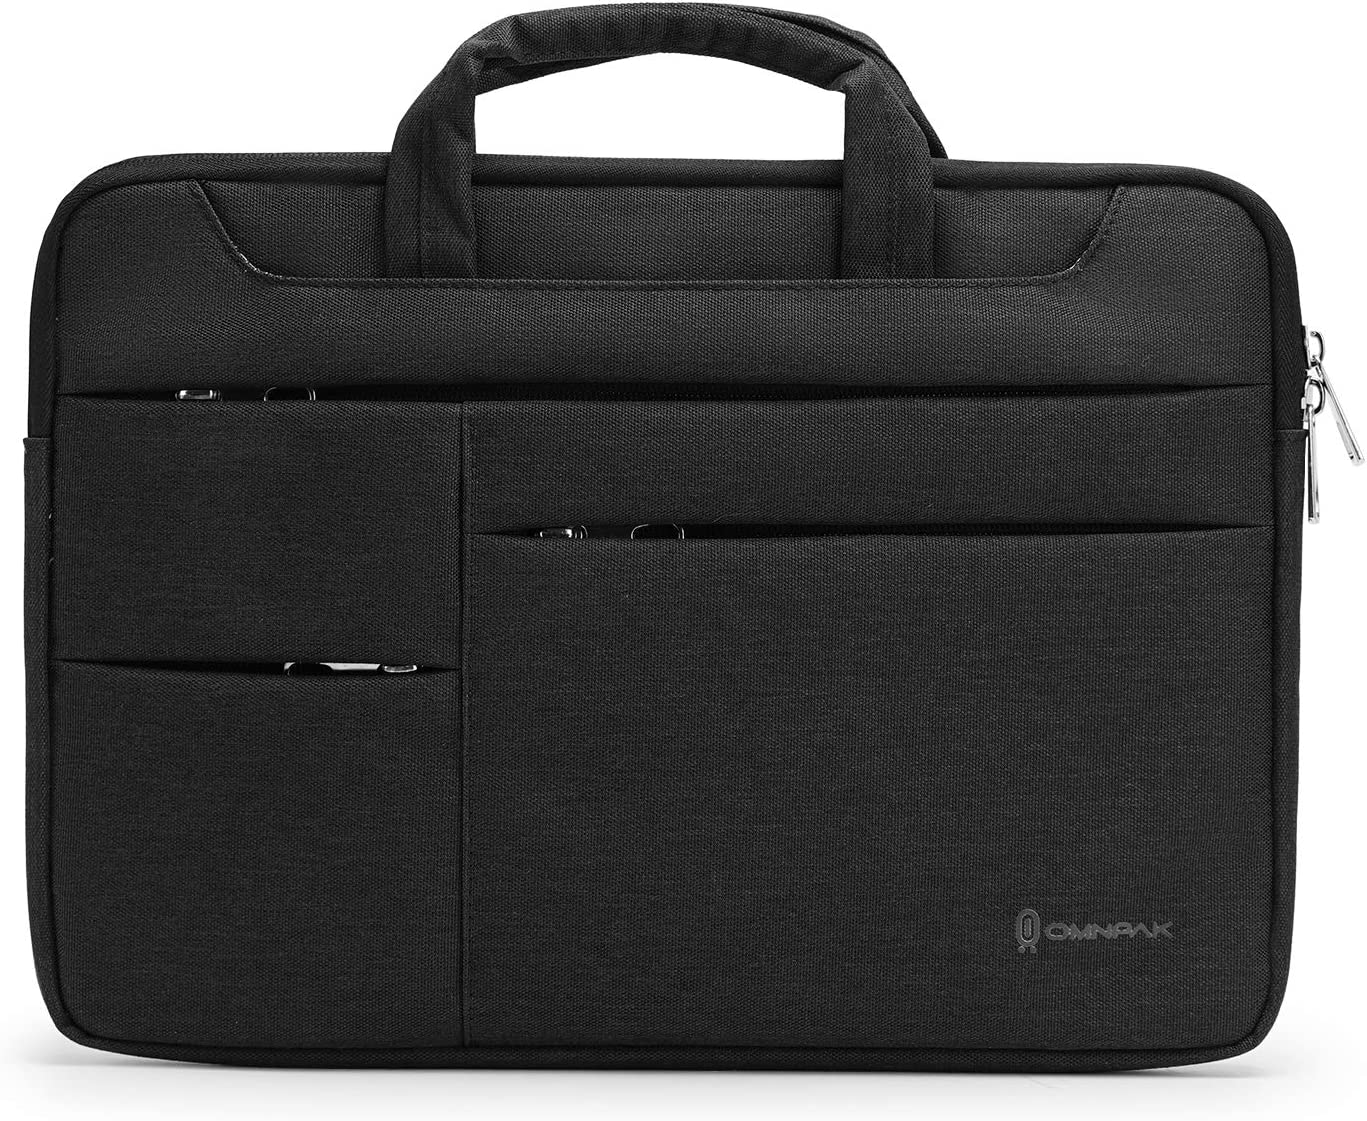 Omnpak 360 Laptop Sleeve Carrying Case for 15.6 Inch Acer Aspire E 15, Water-Resistant Notebook Bag Case for 2020 New Dell XPS 17 Laptop with Accessory Pocket,Black